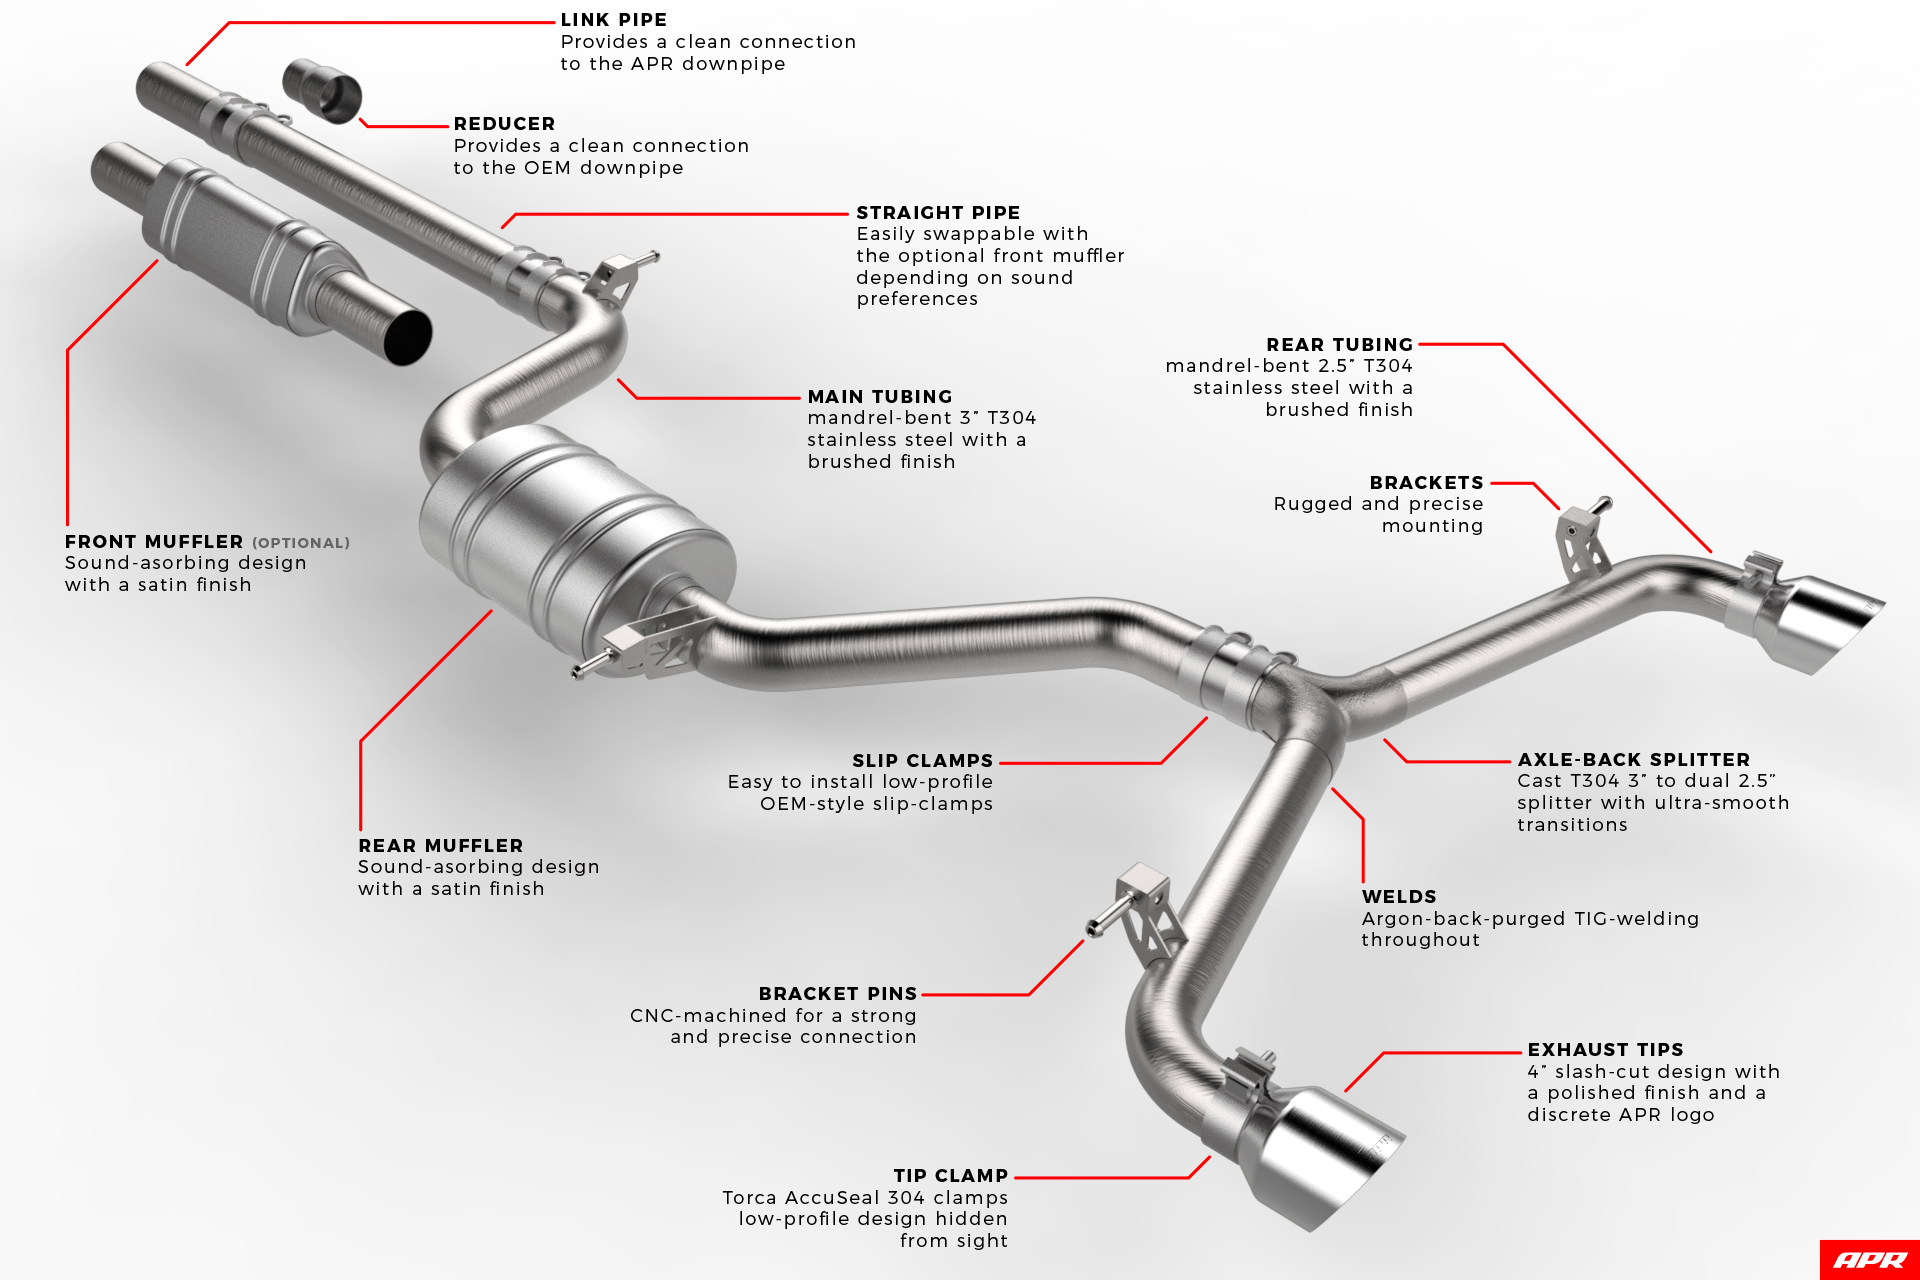 audi a4 exhaust system diagram chevy cavalier stereo wiring 3 engine 2007